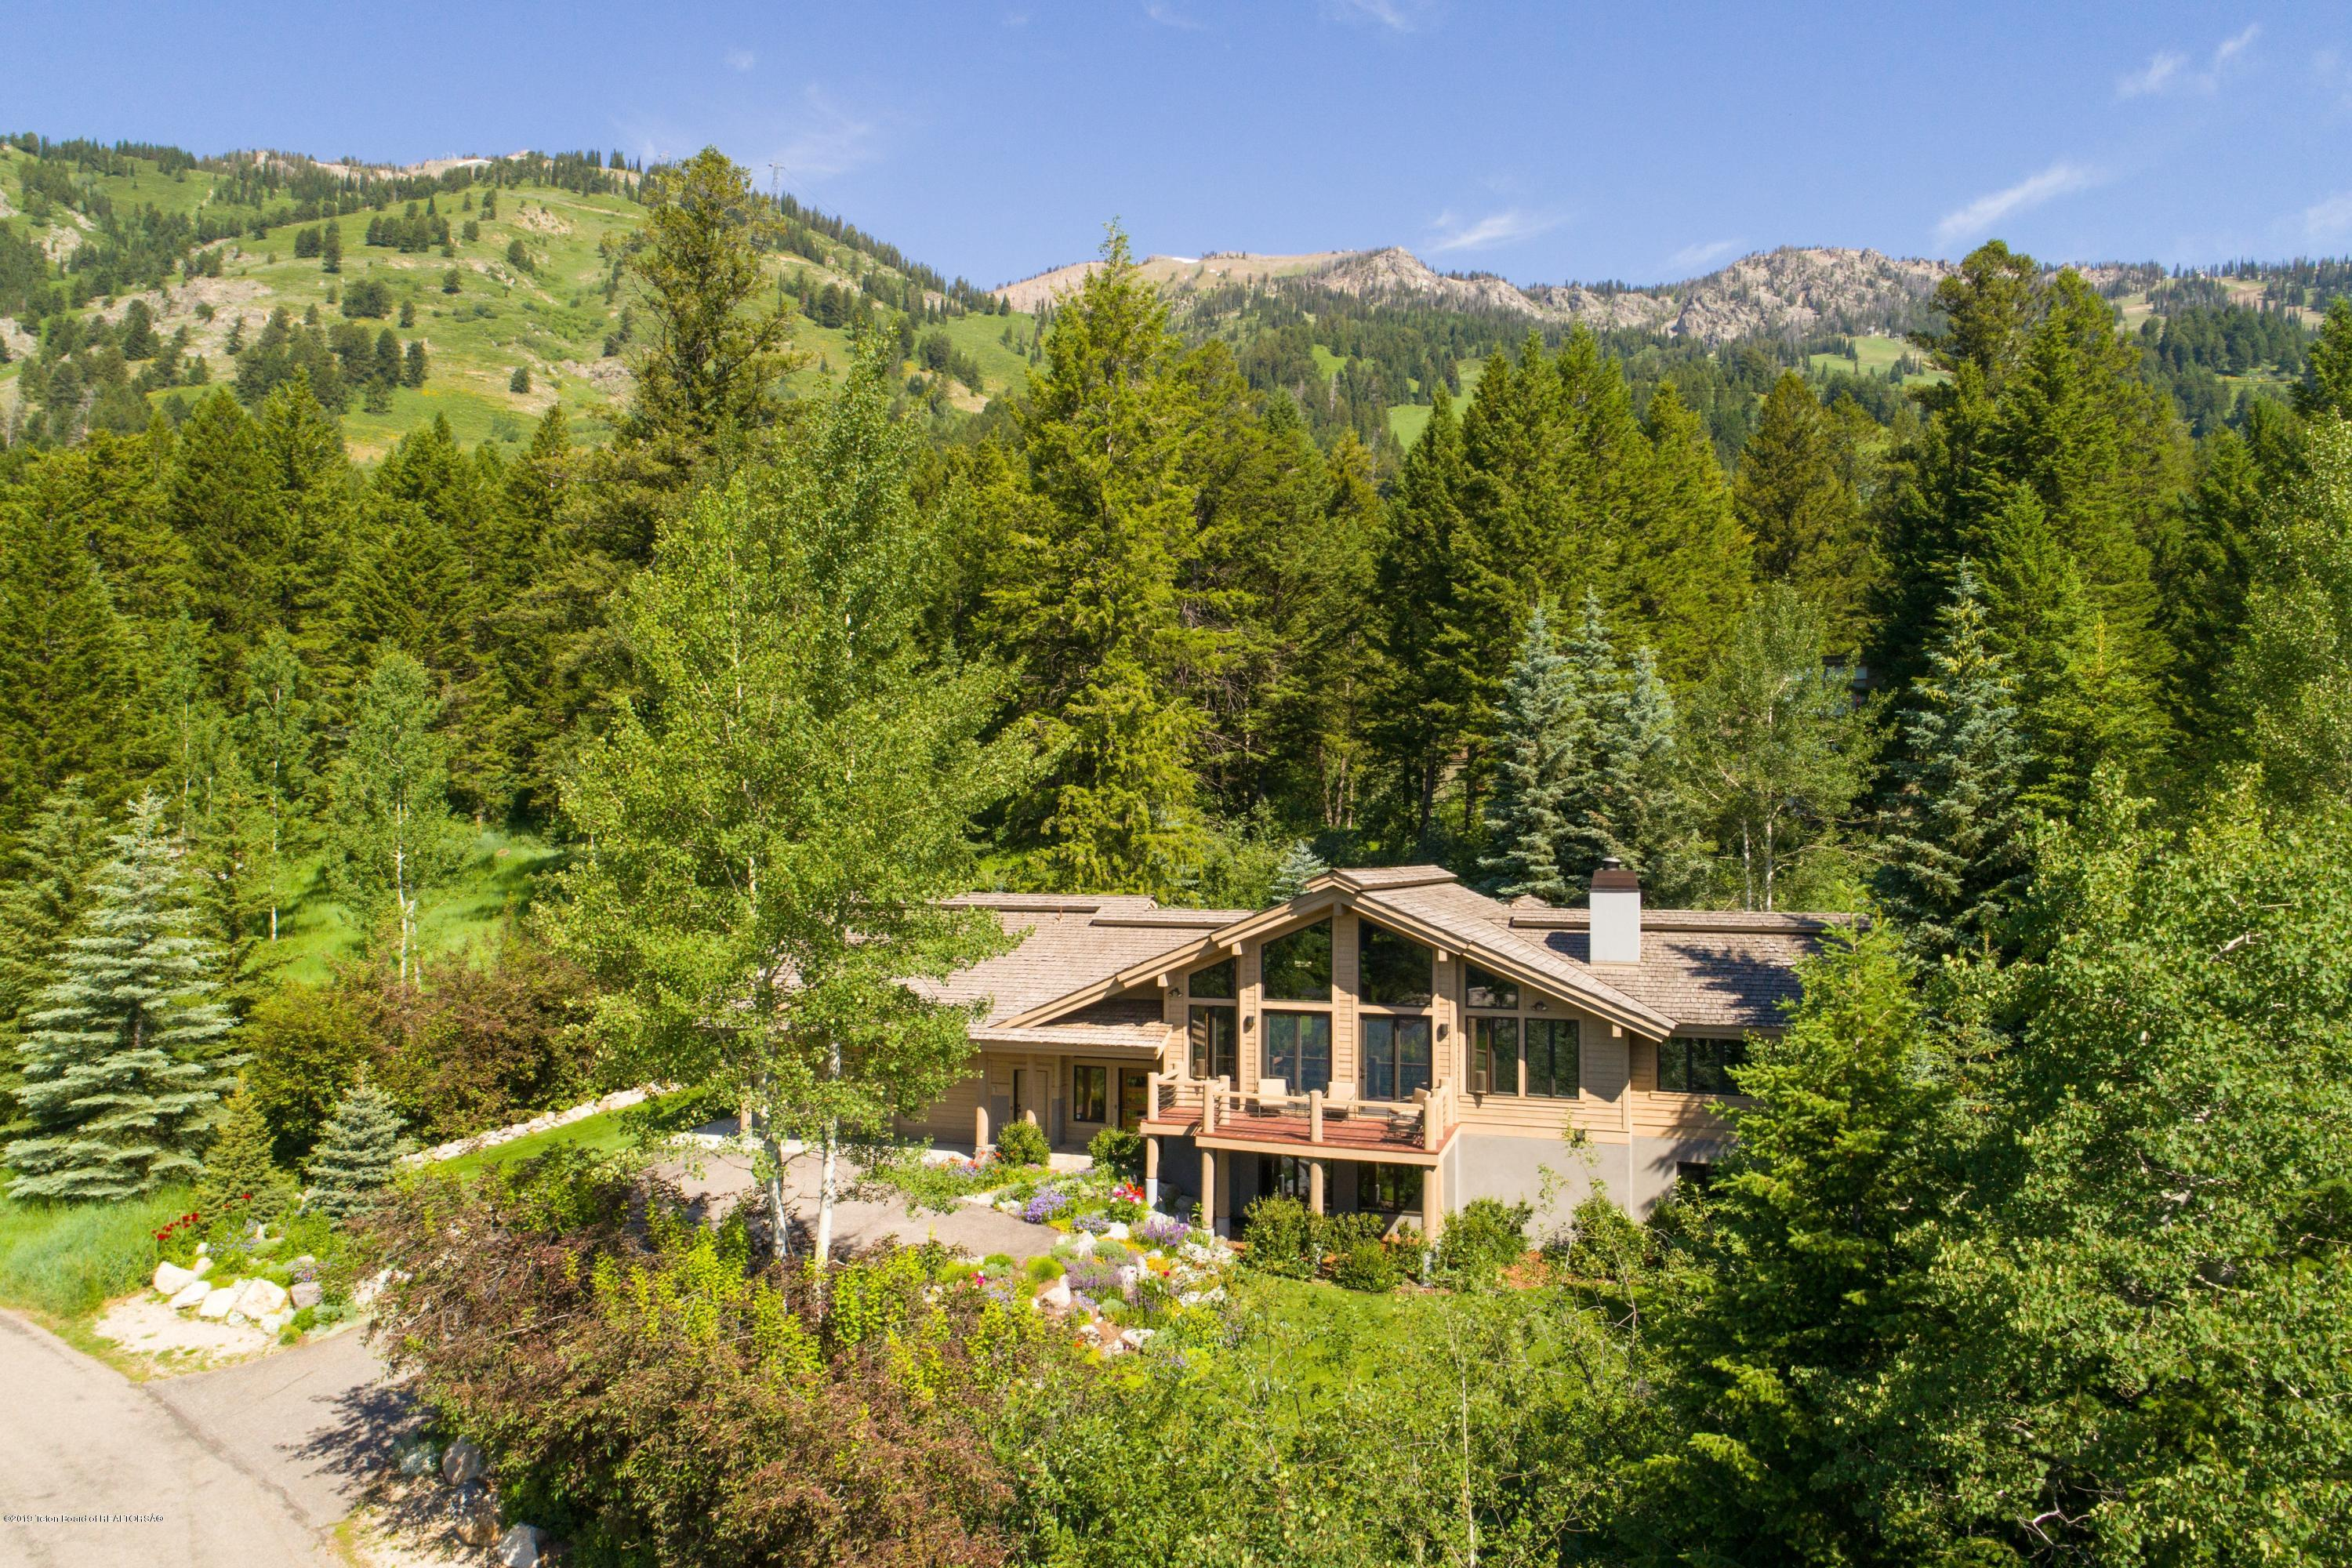 Ski Real Estate for Sale in Jackson Hole, WY - JH Property Group